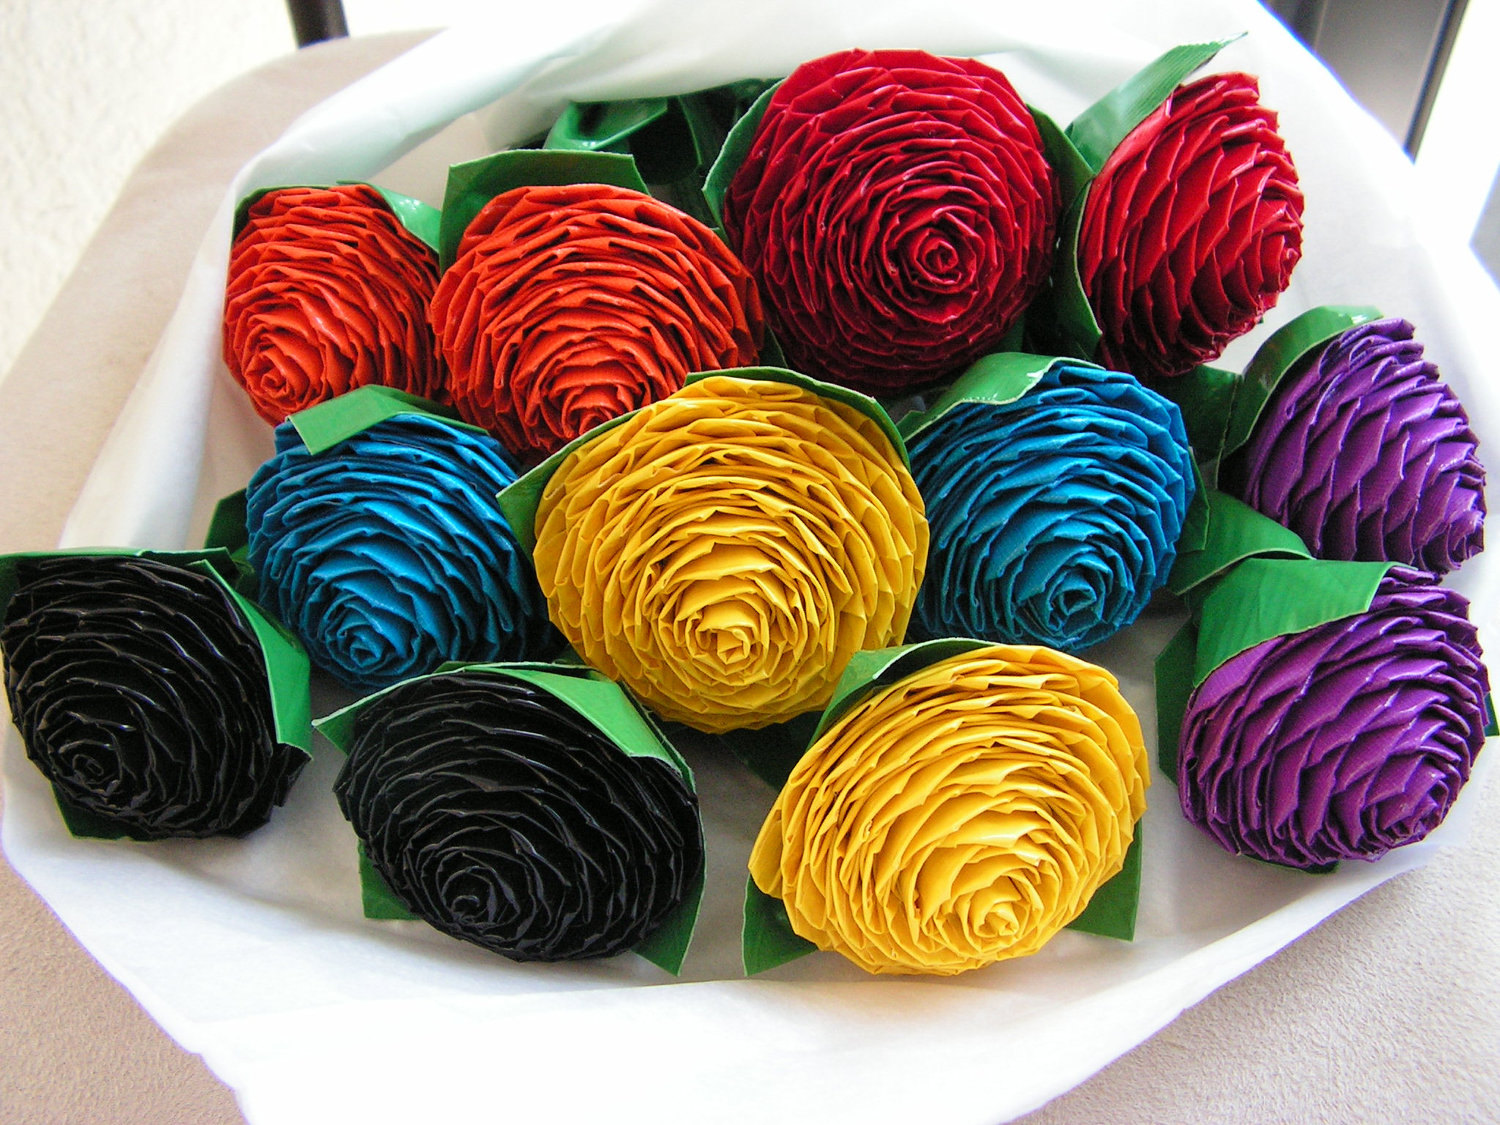 Rainbow wedding color palette wedding flower alternatives for How to color roses rainbow